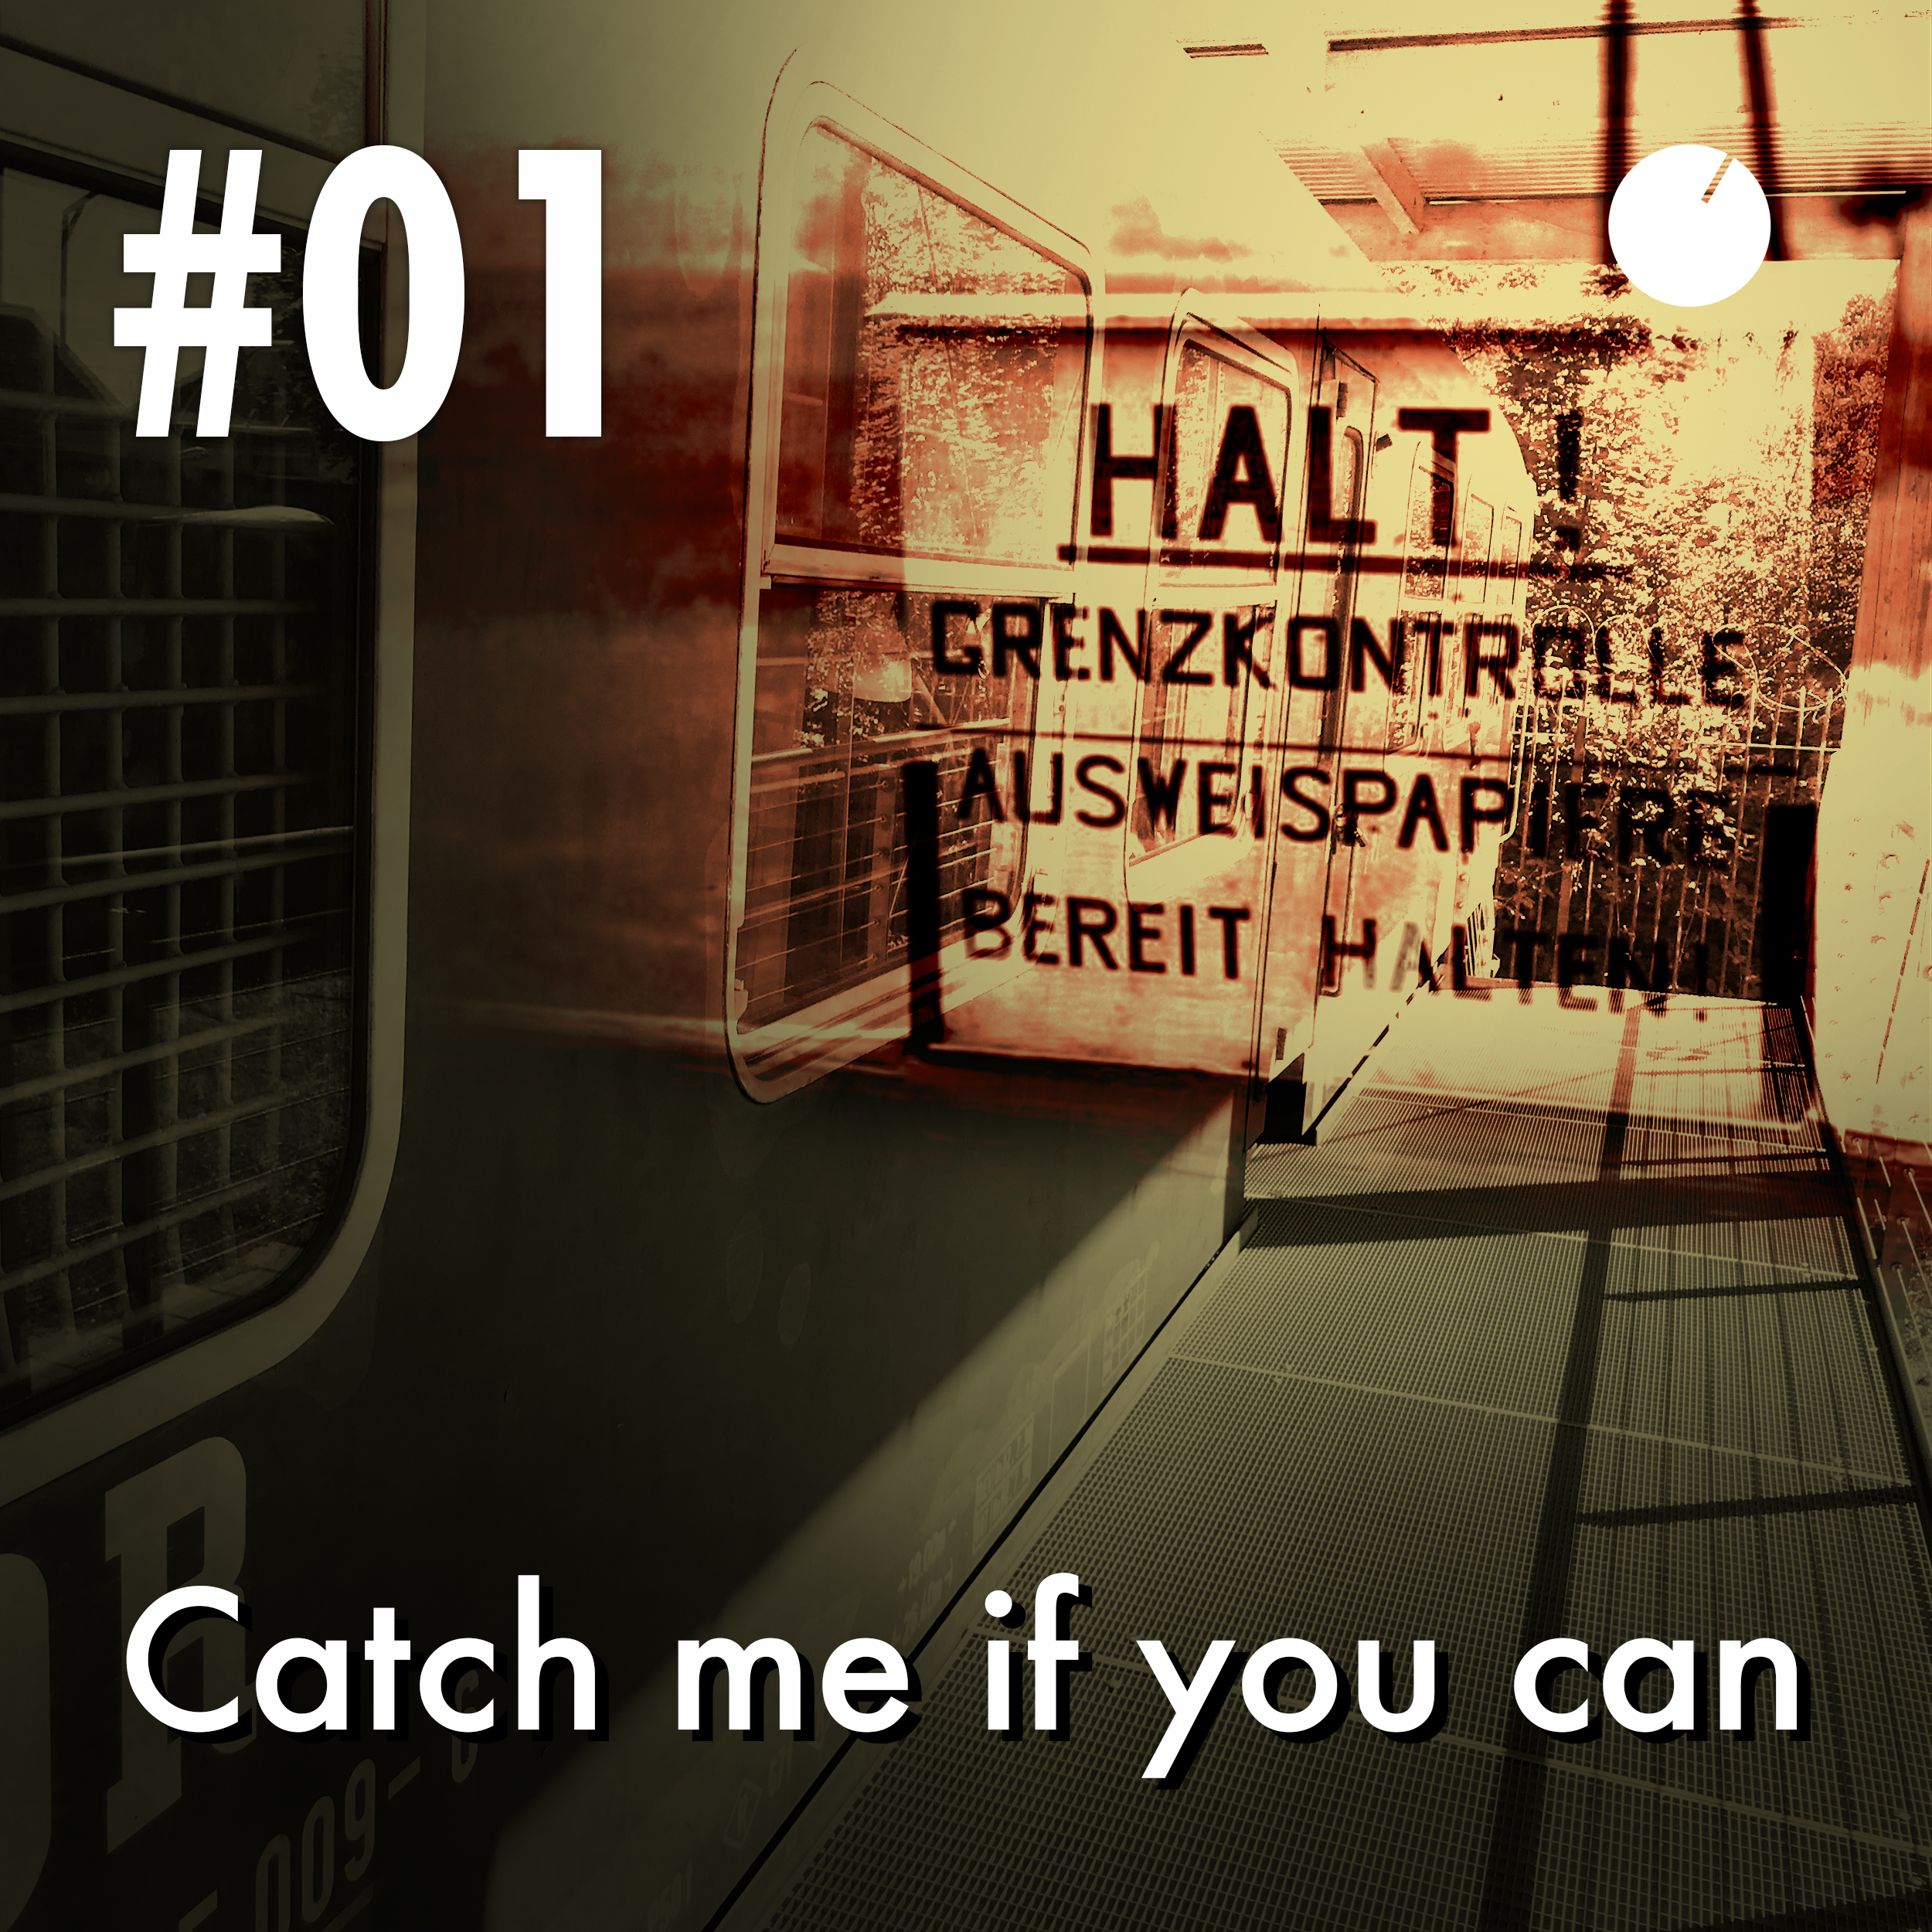 #01 Catch me if you can